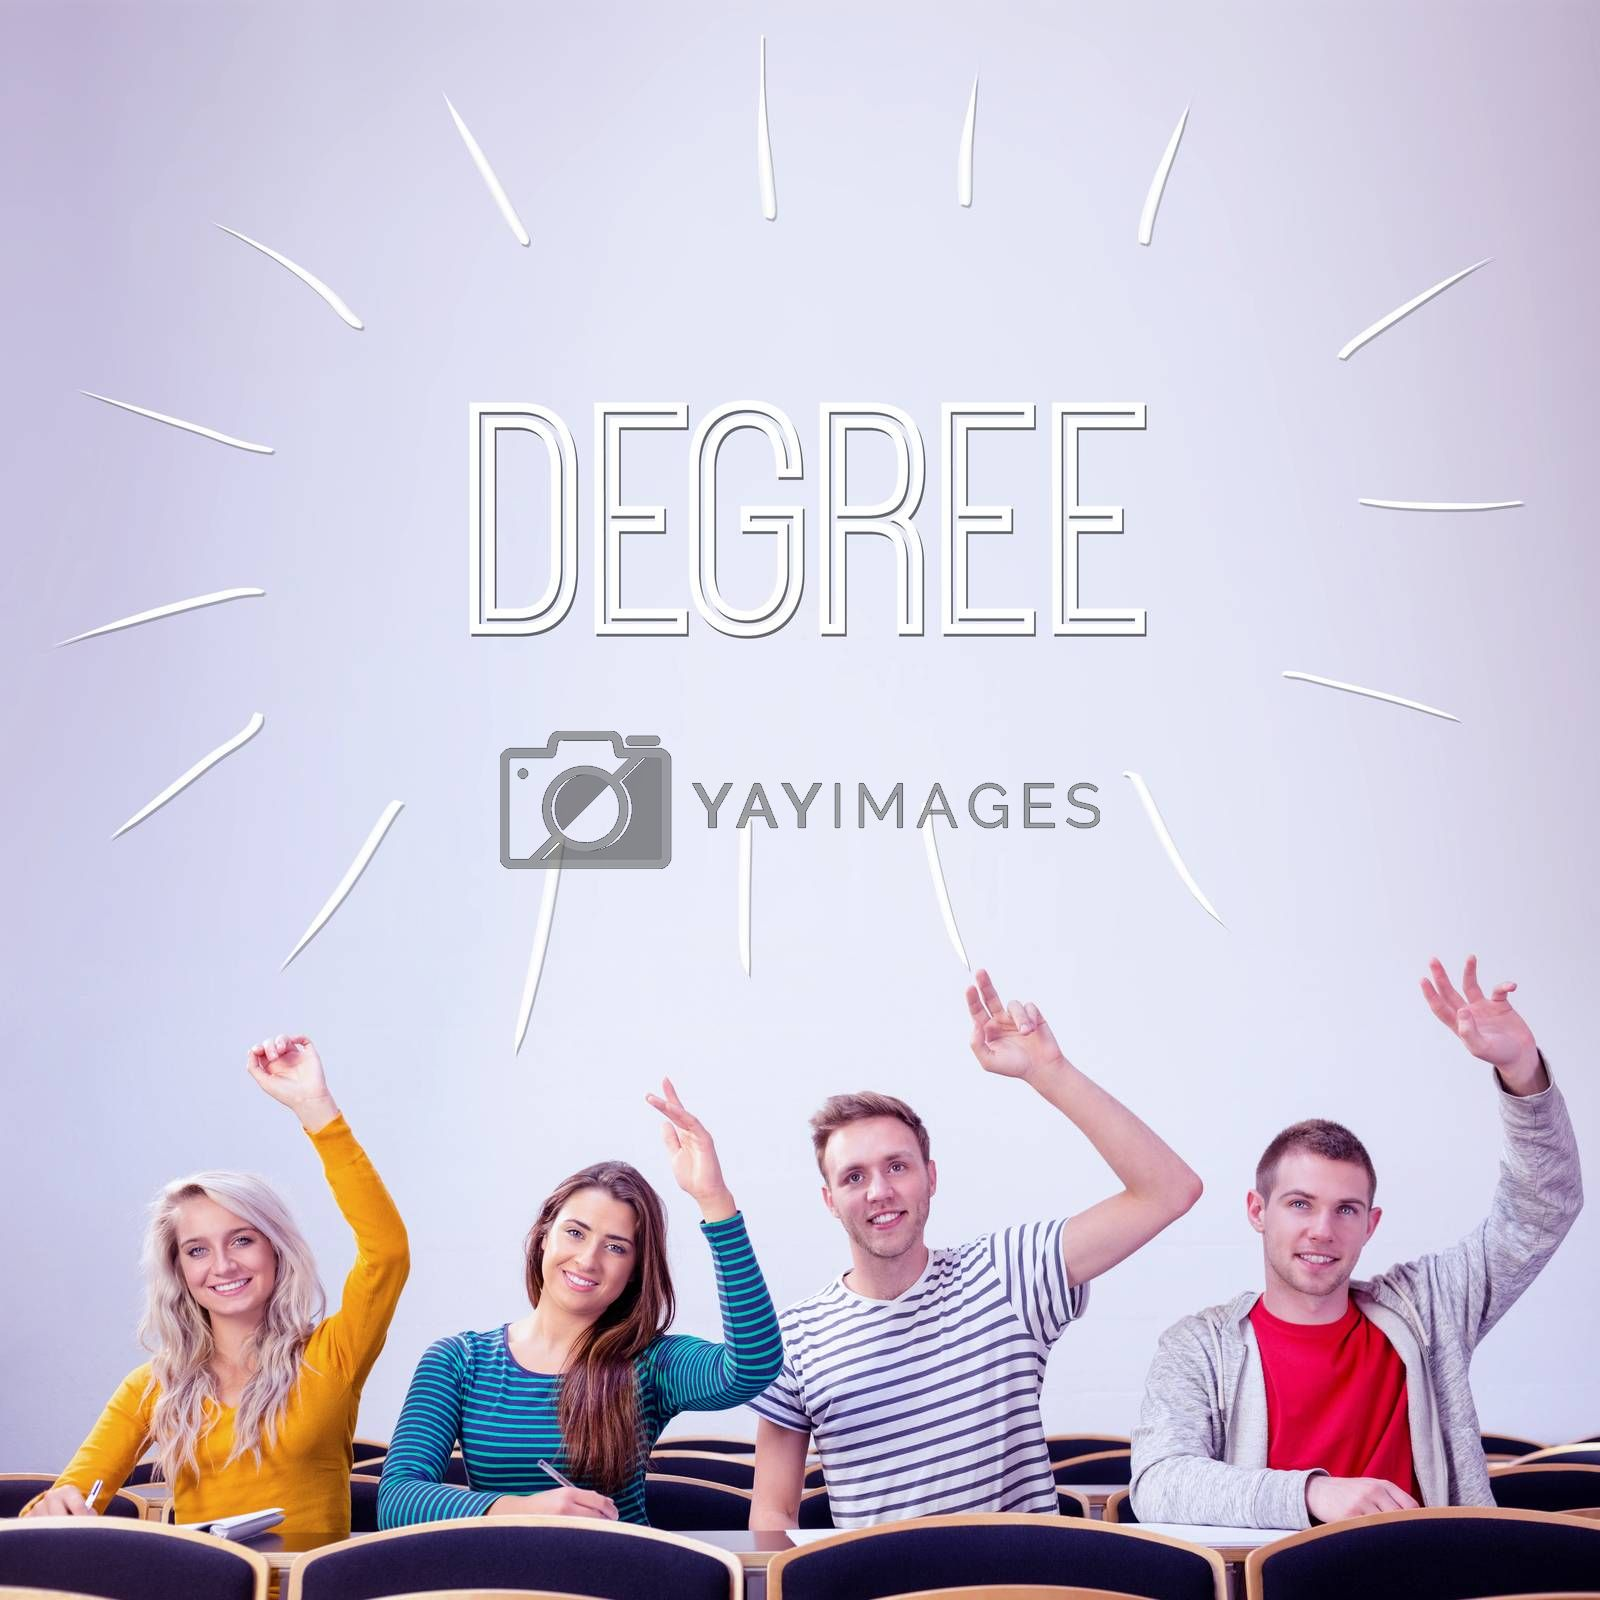 Degree against college students raising hands in the classroom by Wavebreakmedia